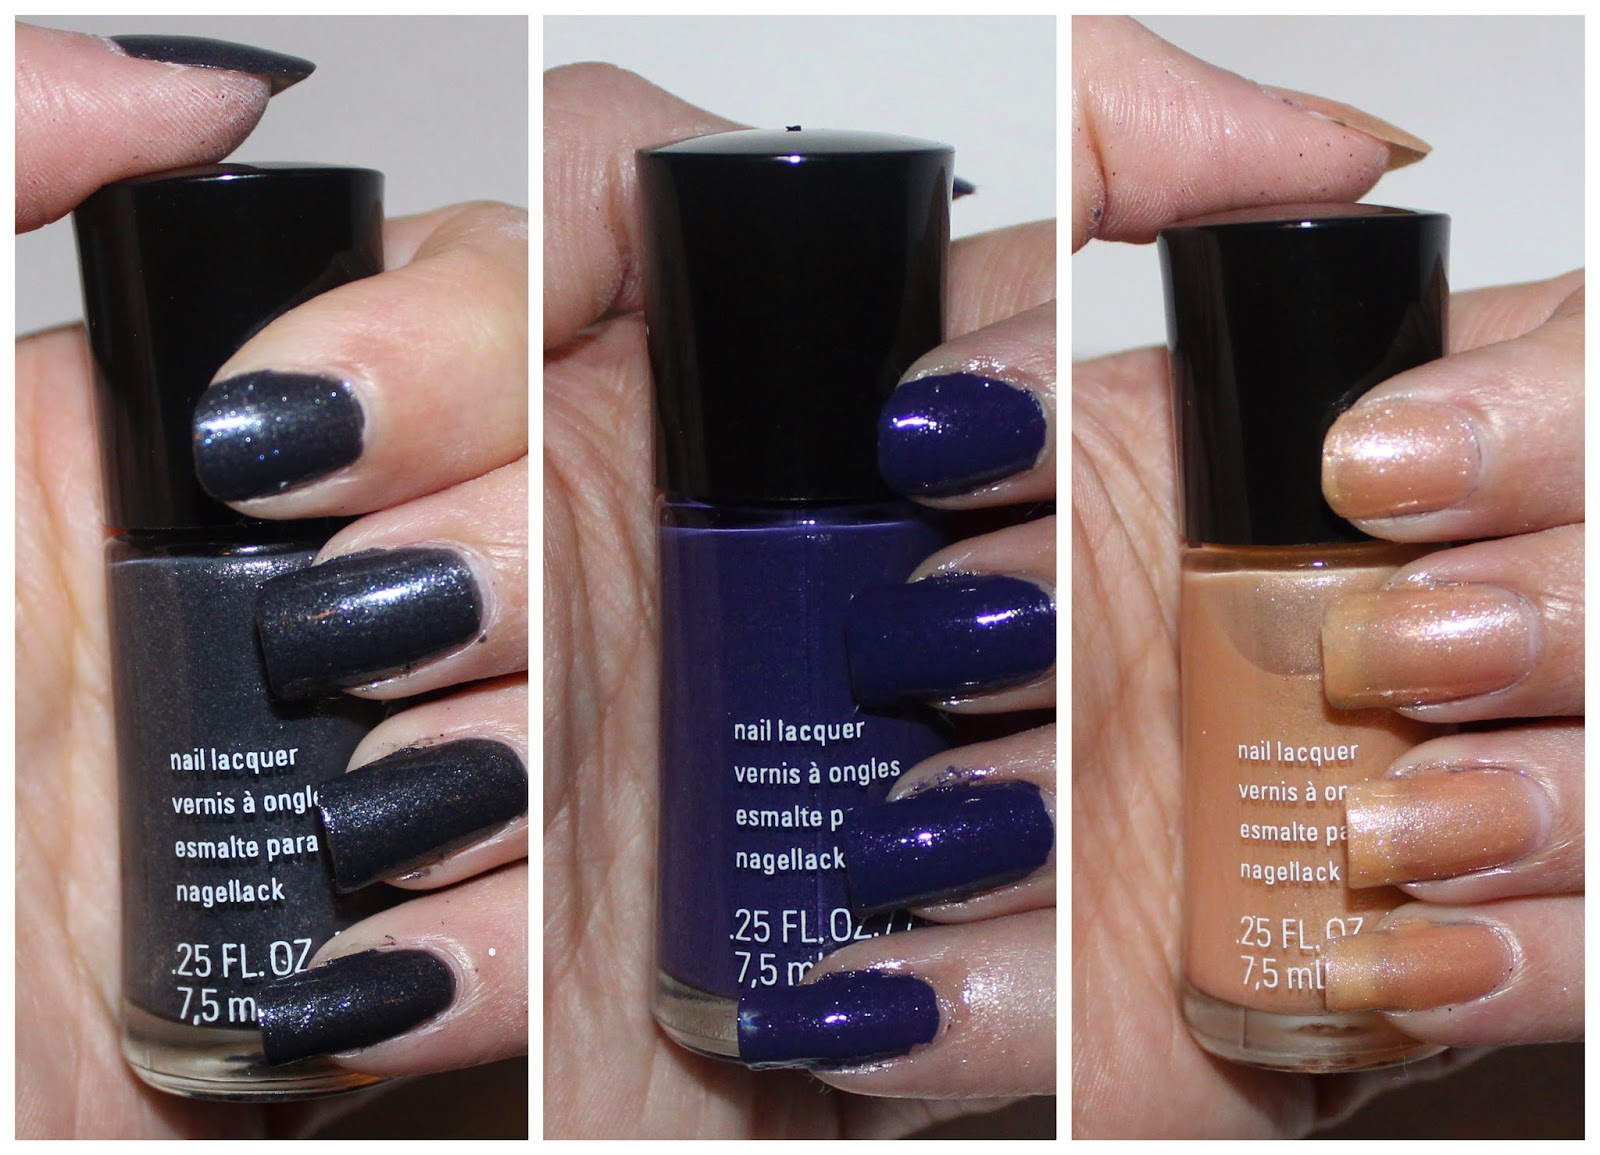 Beyond Blush: Mary Kay Nail Lacquer in Night Diamond, Sapphire Noir ...